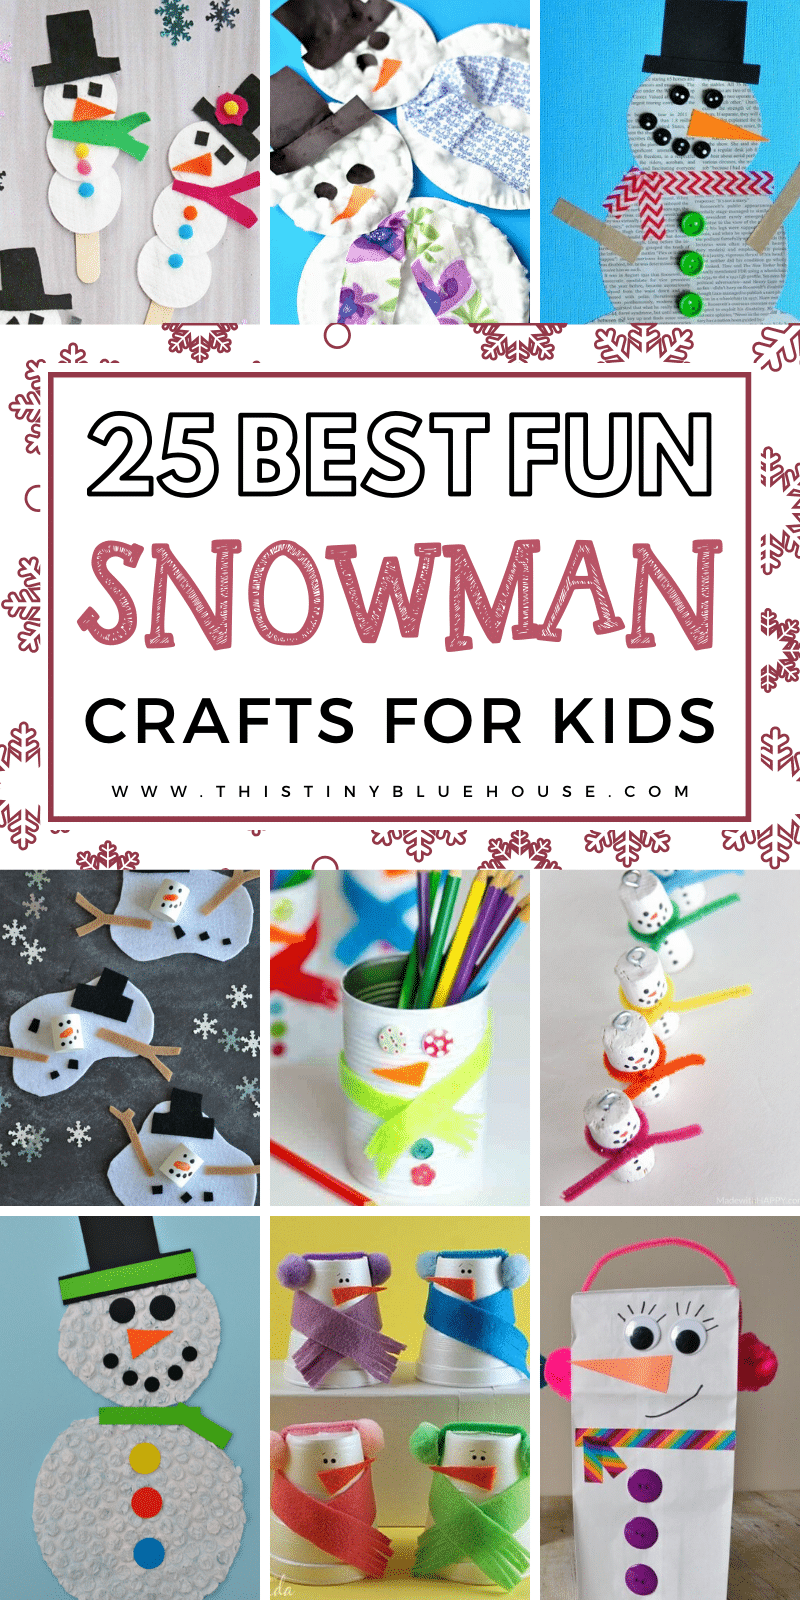 25 Adorable Easy Snowman Crafts For Toddlers. These easy crafts are a perfect weekend or weeknight activity to spark creativity and get into festive holiday spirit. #christmascraftsforkids #snowmancrafts #snowmancraftsforkidstomake #snowmancraftsfortoddlers #snowmancraftschristmas #wintercrafts #wintercraftsforkids #wintercraftsforpreschool #wintercraftsfortoddlers